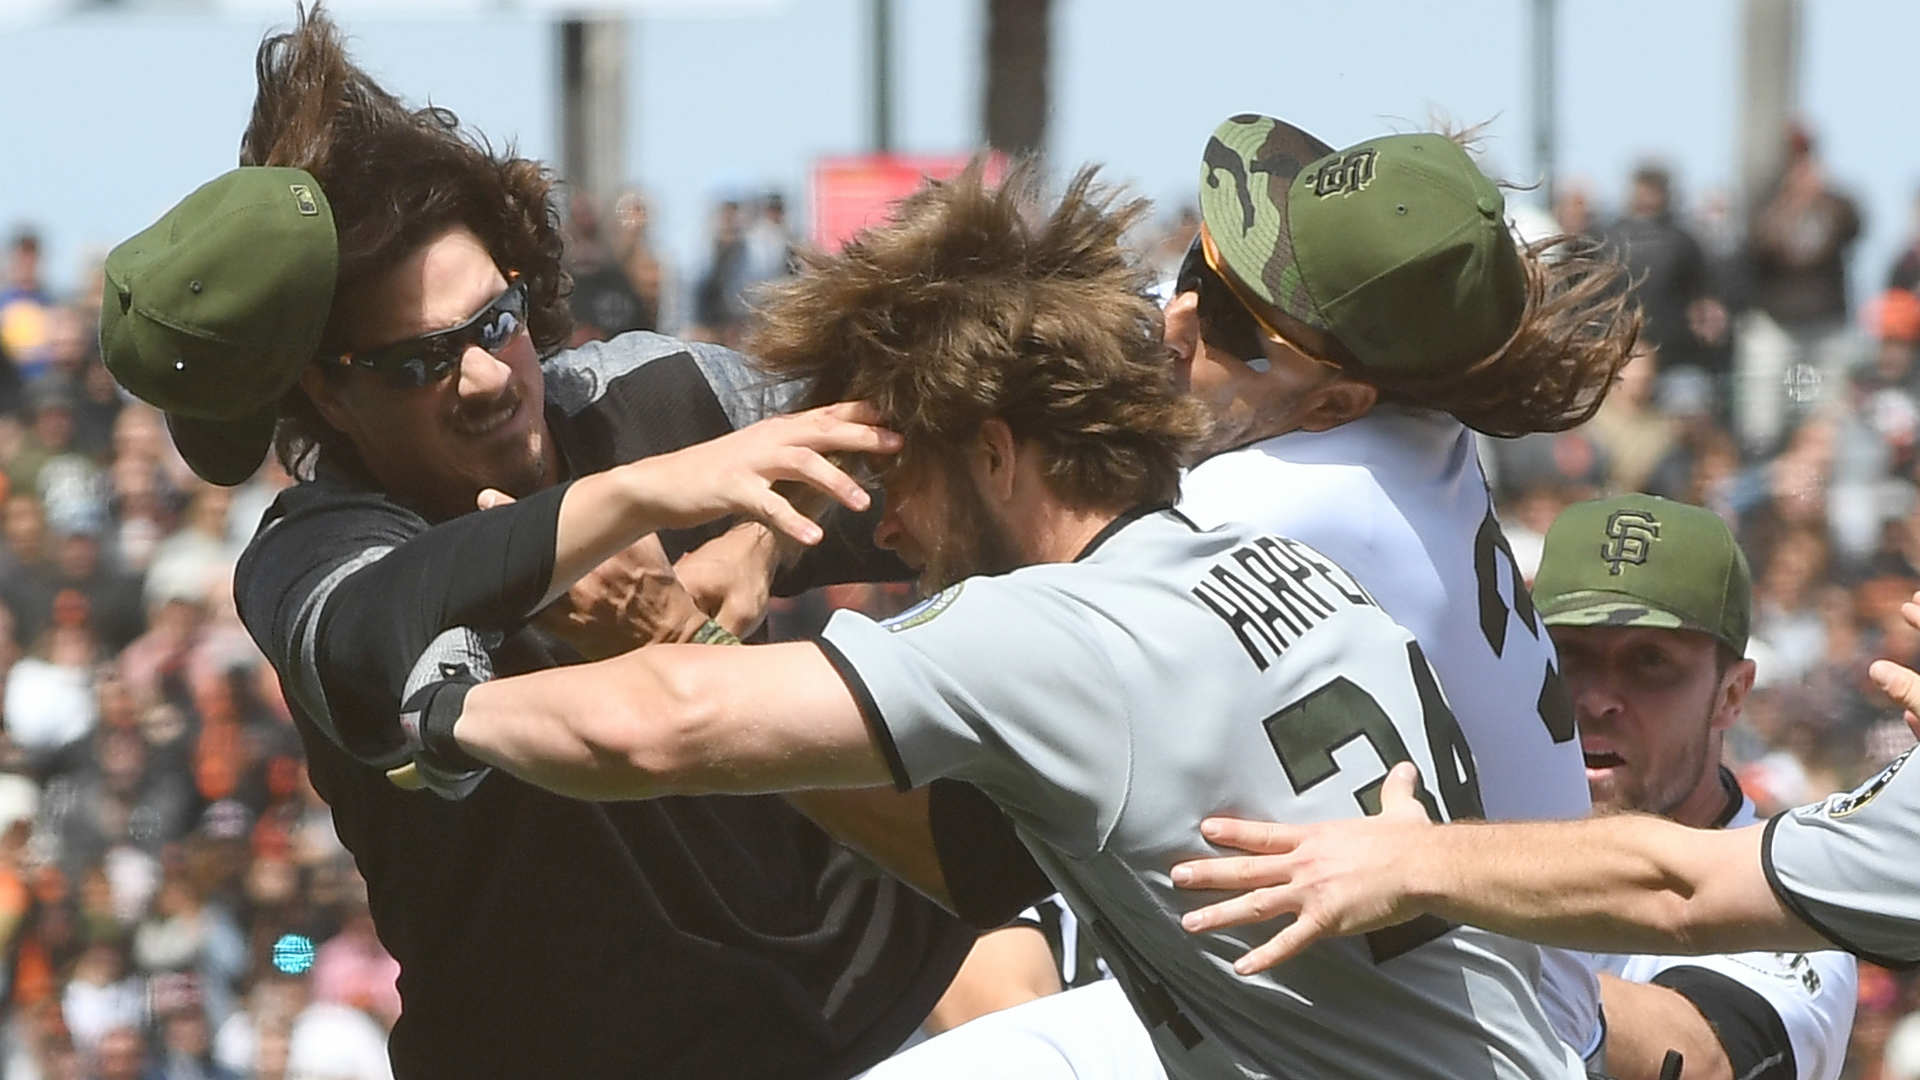 Joe Maddon Doesn't Blame Bryce Harper for Brawl, Charging Mound vs. Giants